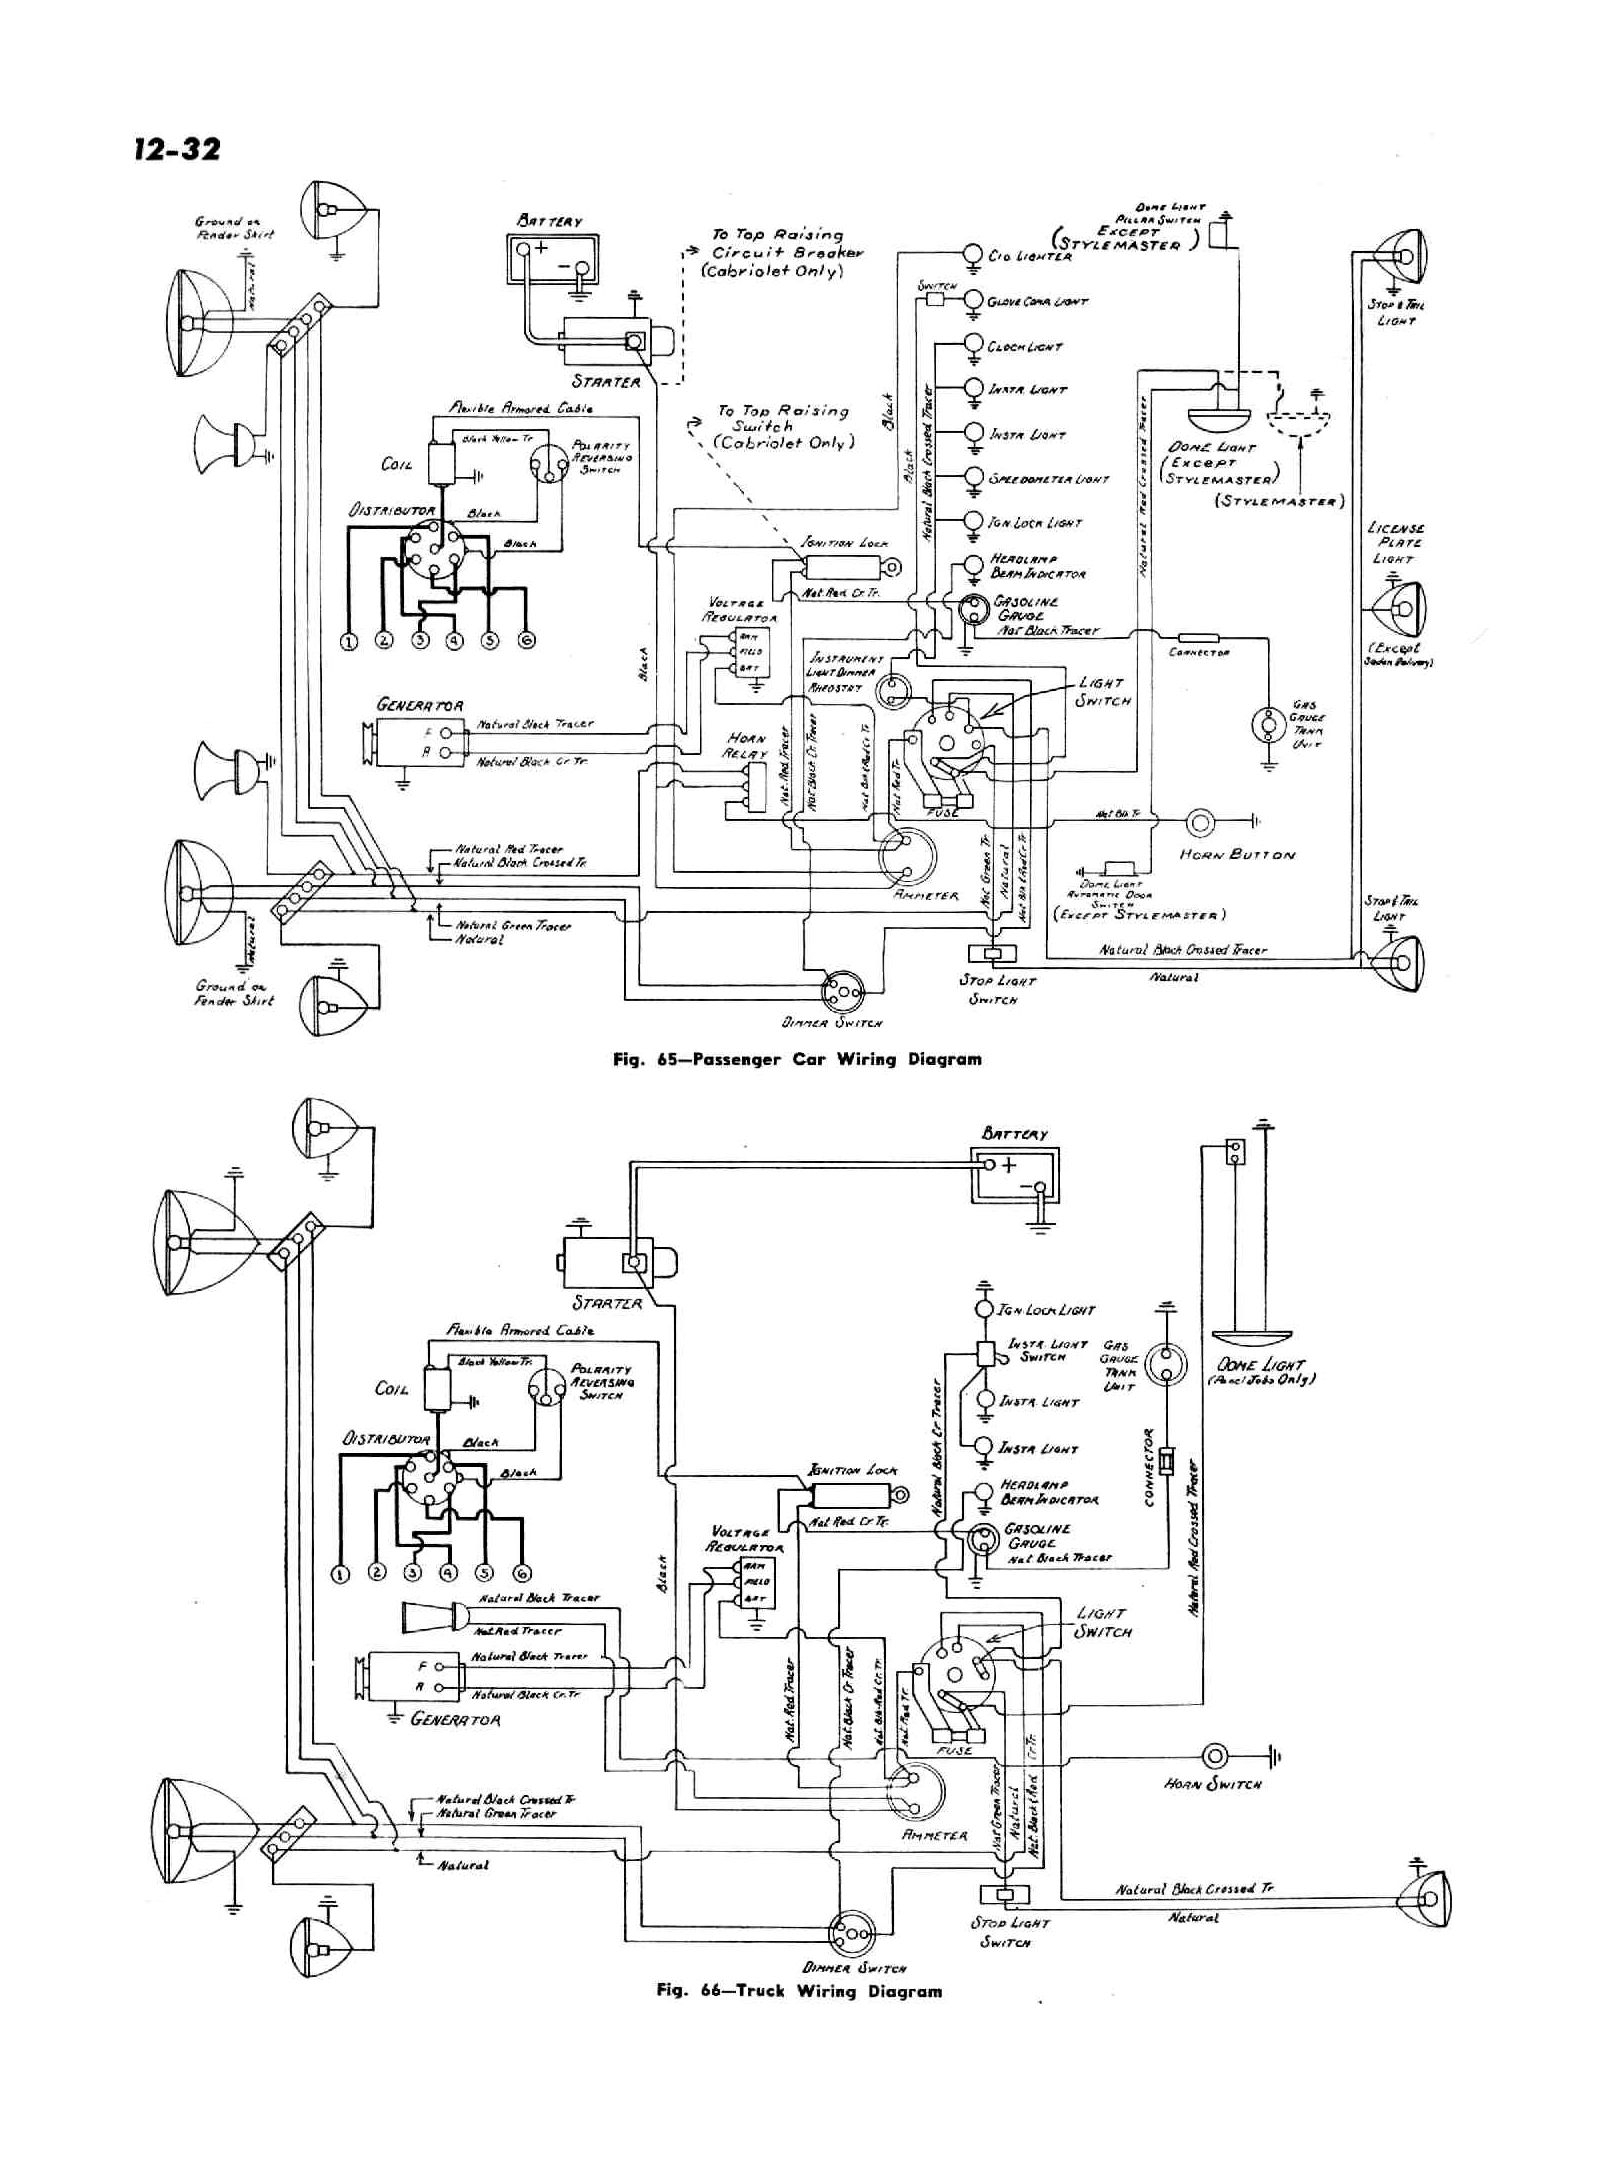 chevy wiring diagrams with 6 volt generator wiring diagram?resize\=665%2C899\&ssl\=1 ford 6000 wiring diagram wiring diagram simonand ford 5000 wiring diagram at panicattacktreatment.co